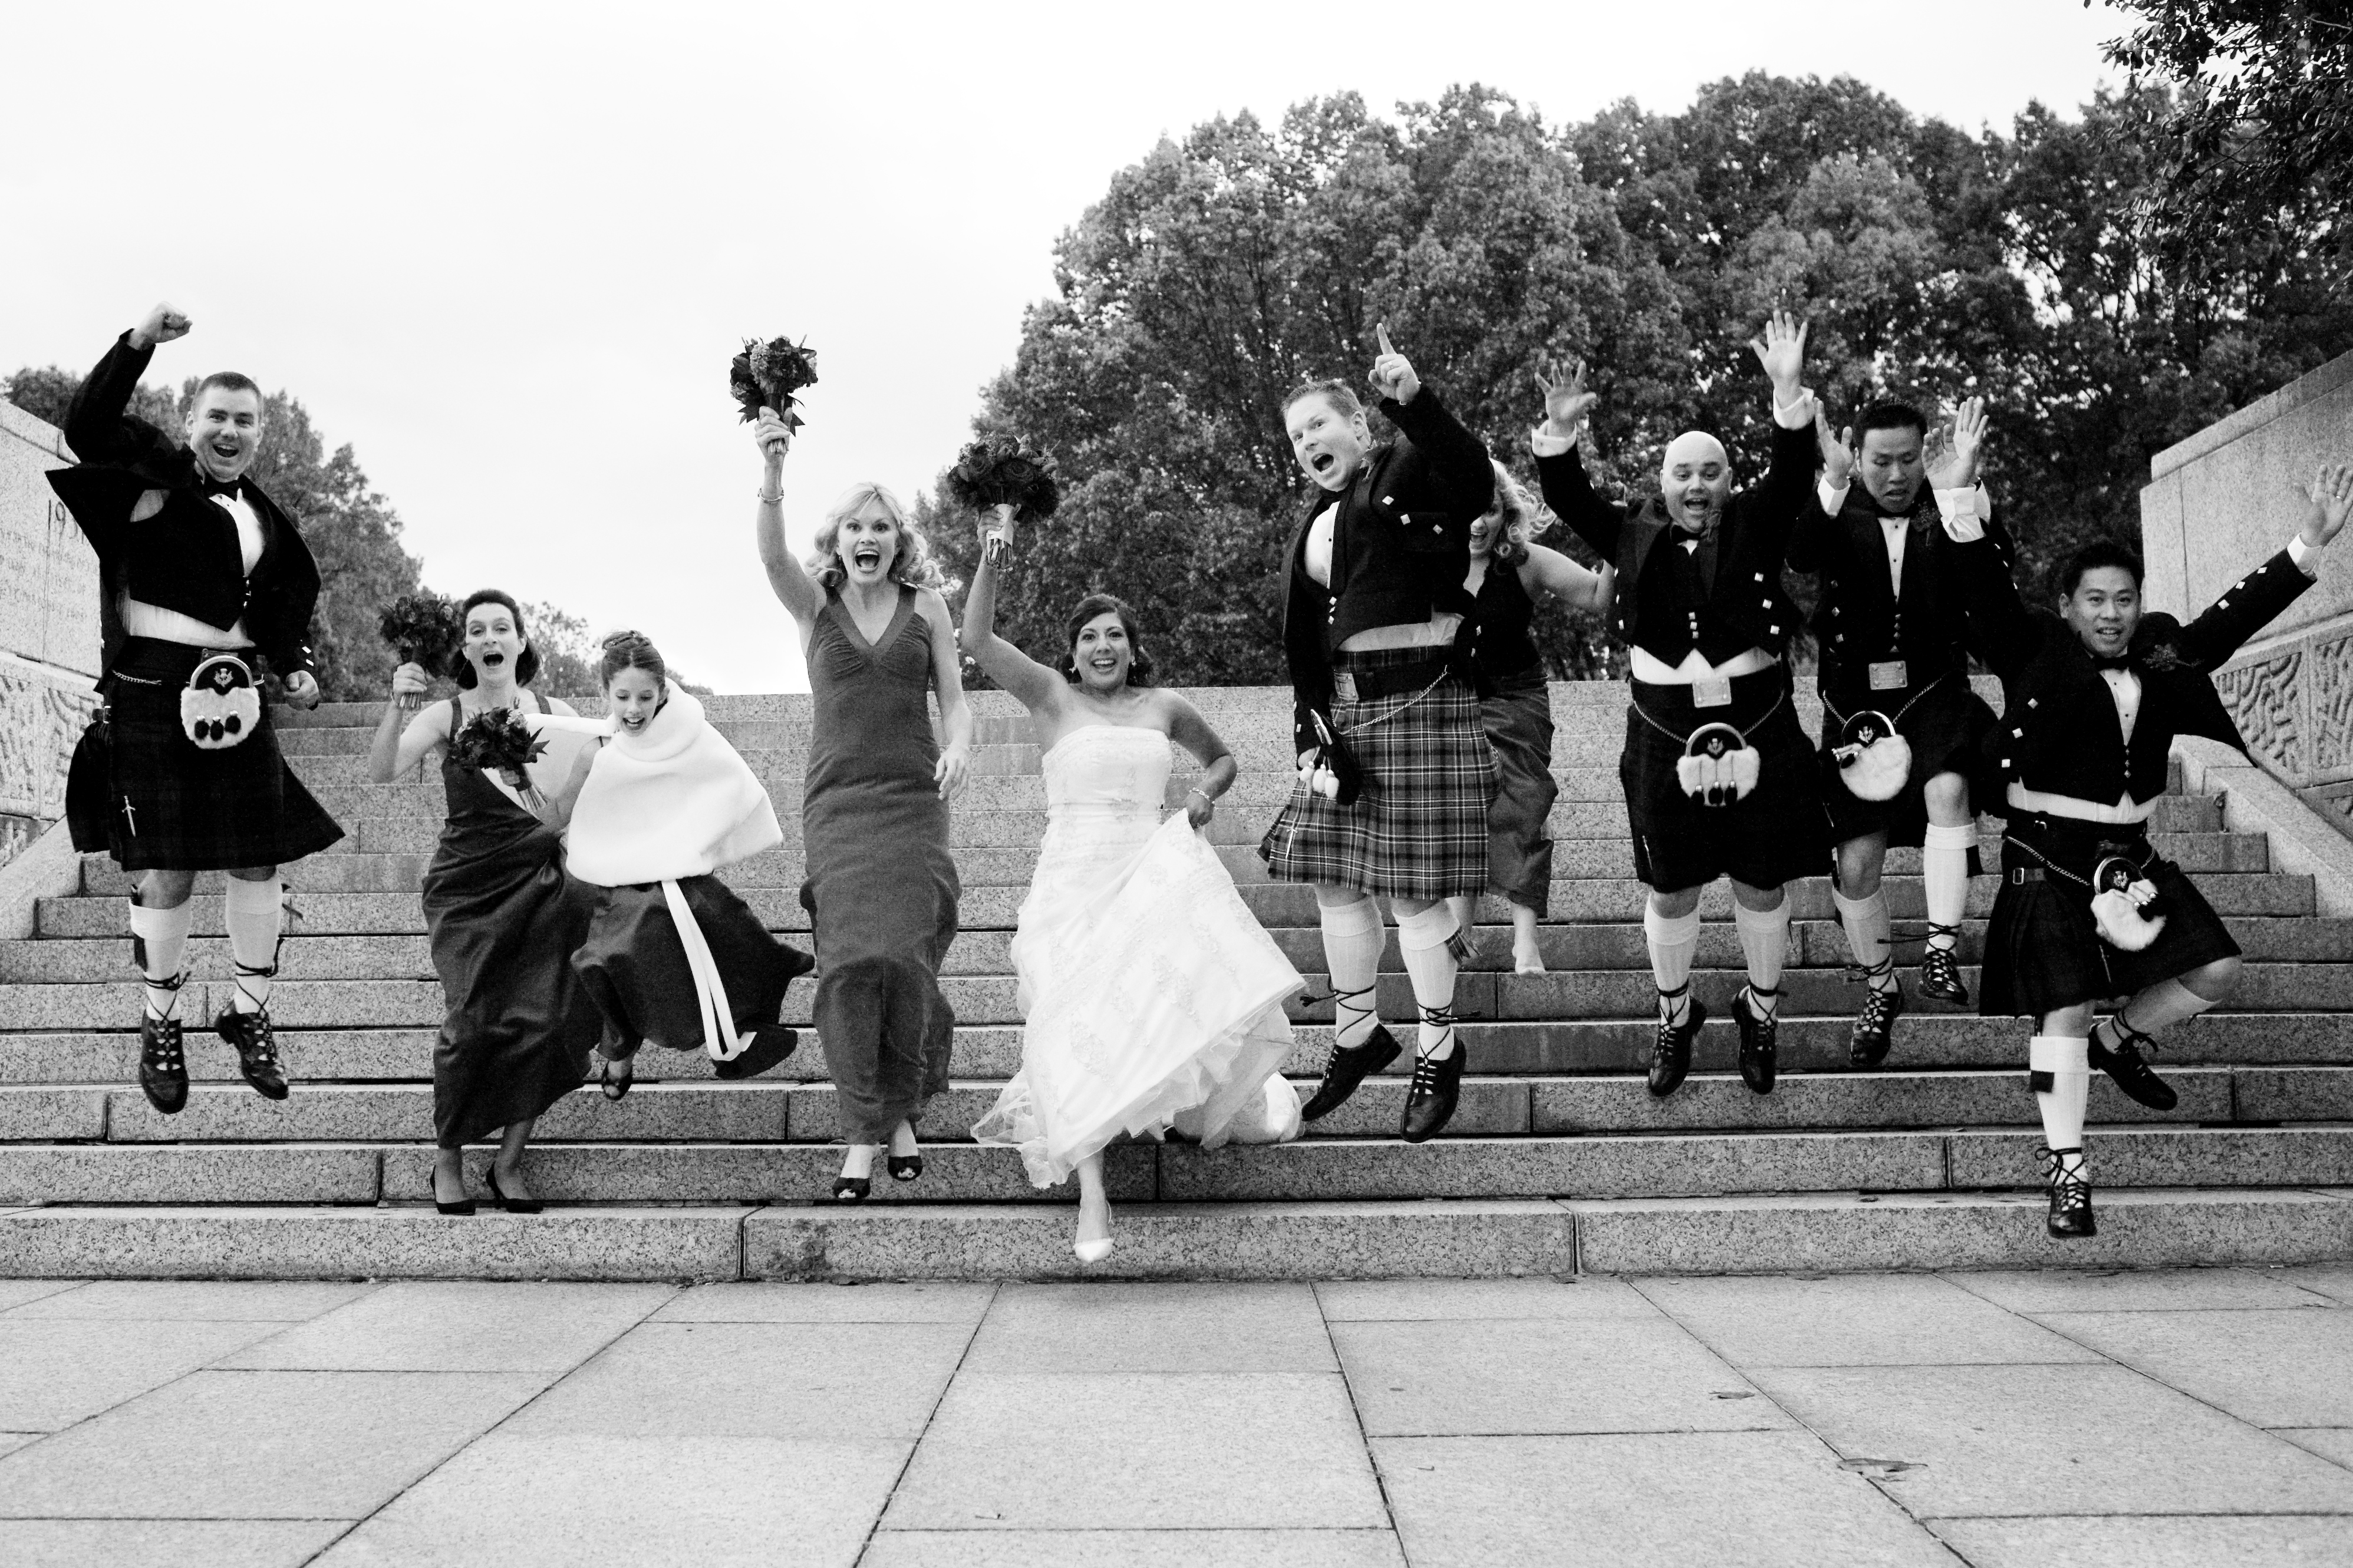 Jumping, Dc, Steps, Scottish, Kilts